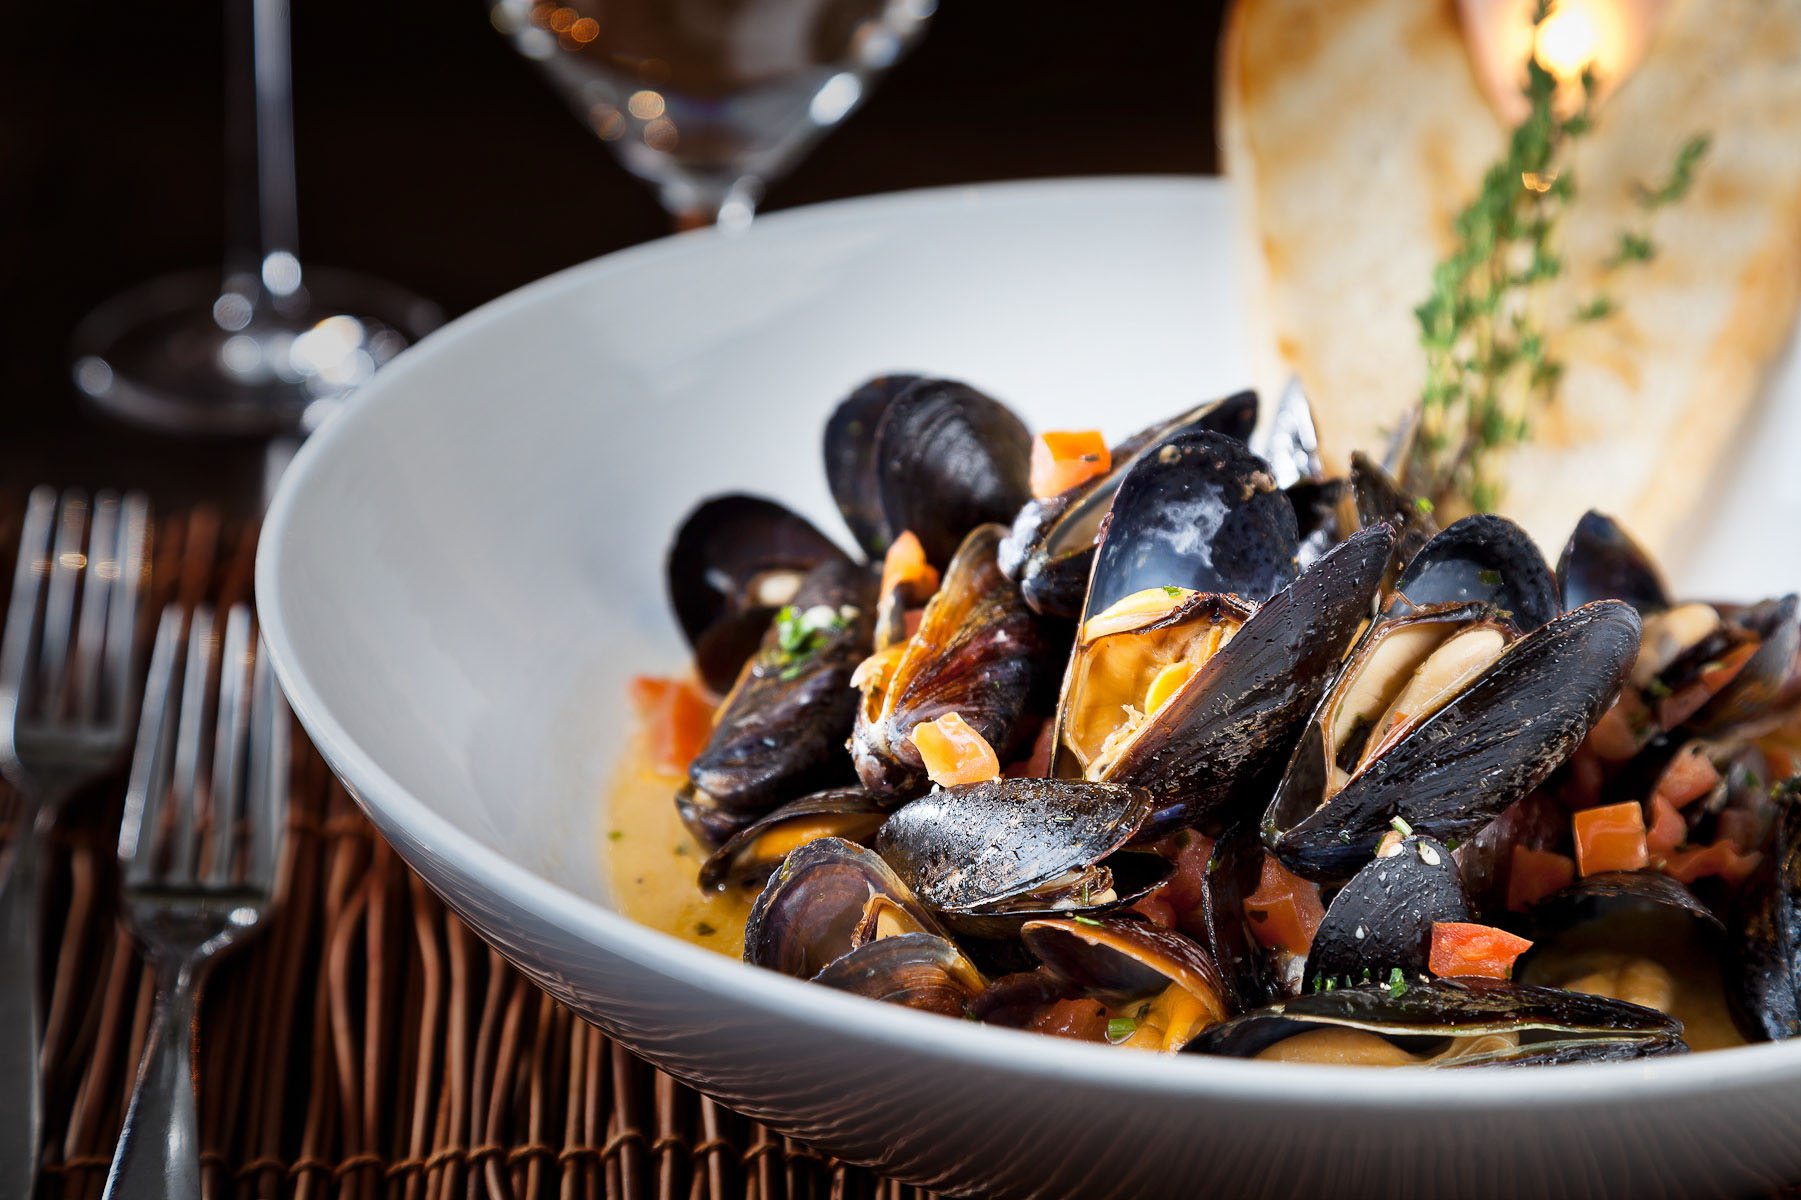 A bowl of mussels prepared by Chef Todd Adkins of Hideaway Steakhouse in Westminster, CO